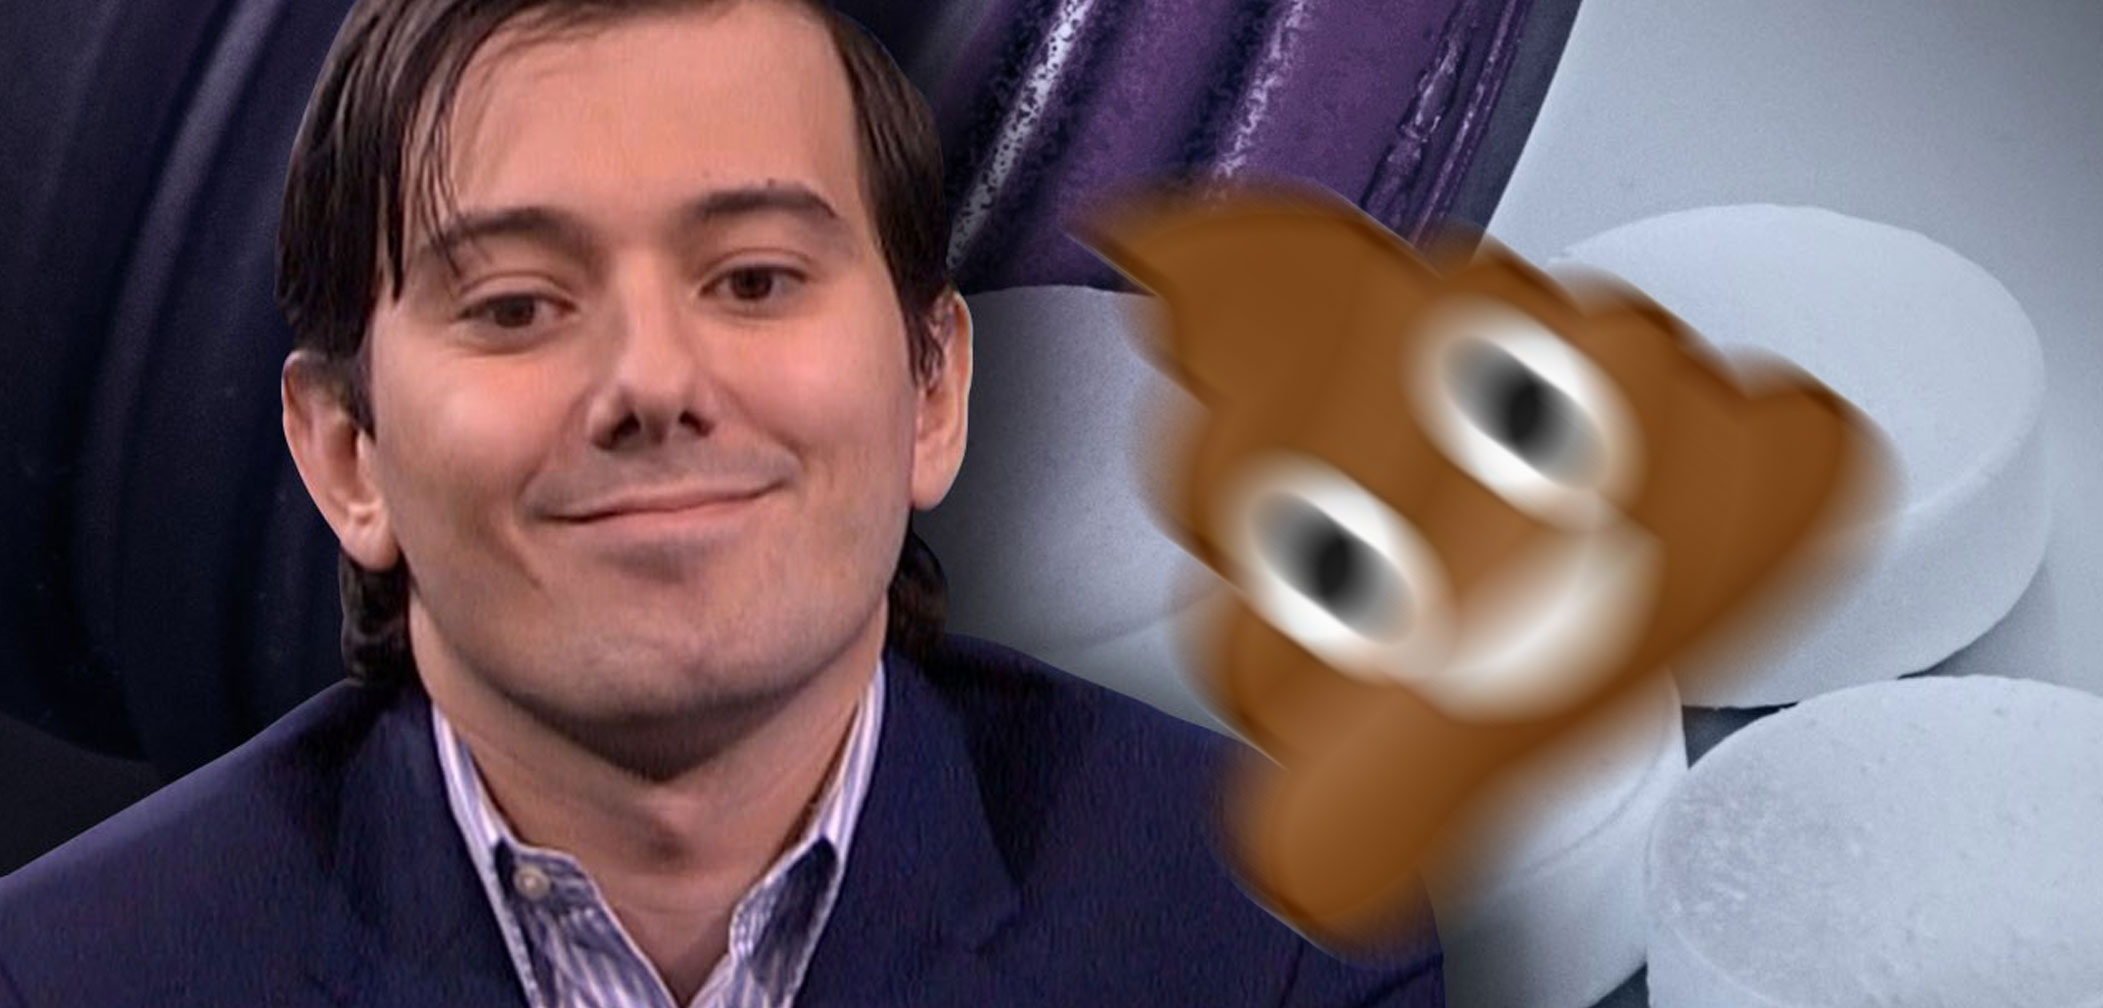 Pharma Douche Martin Shkreli Literally Hit in the Face With Poop (Video)